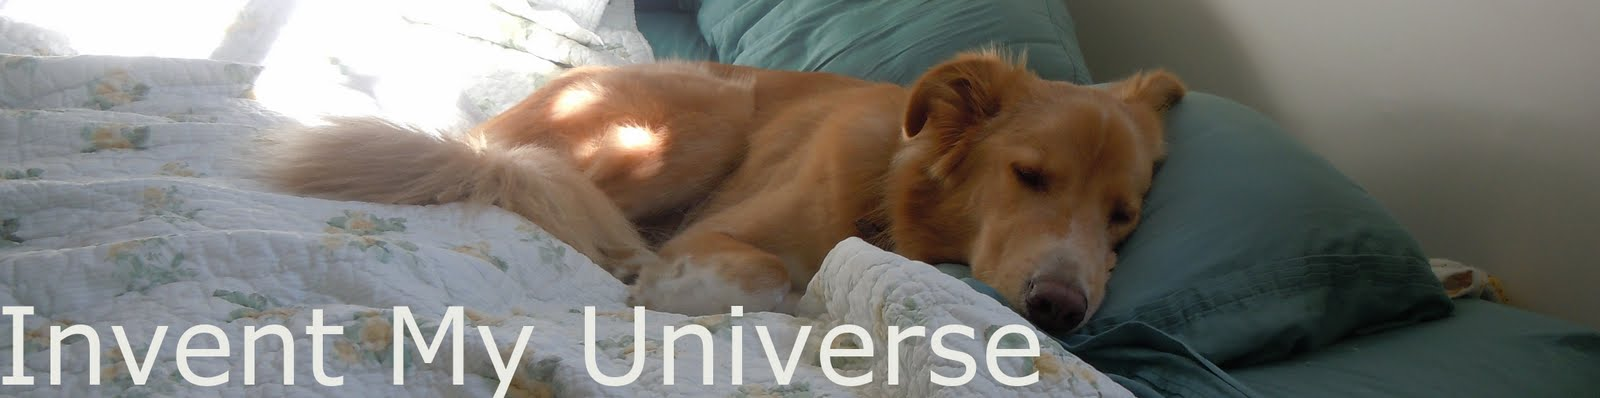 Invent My Universe